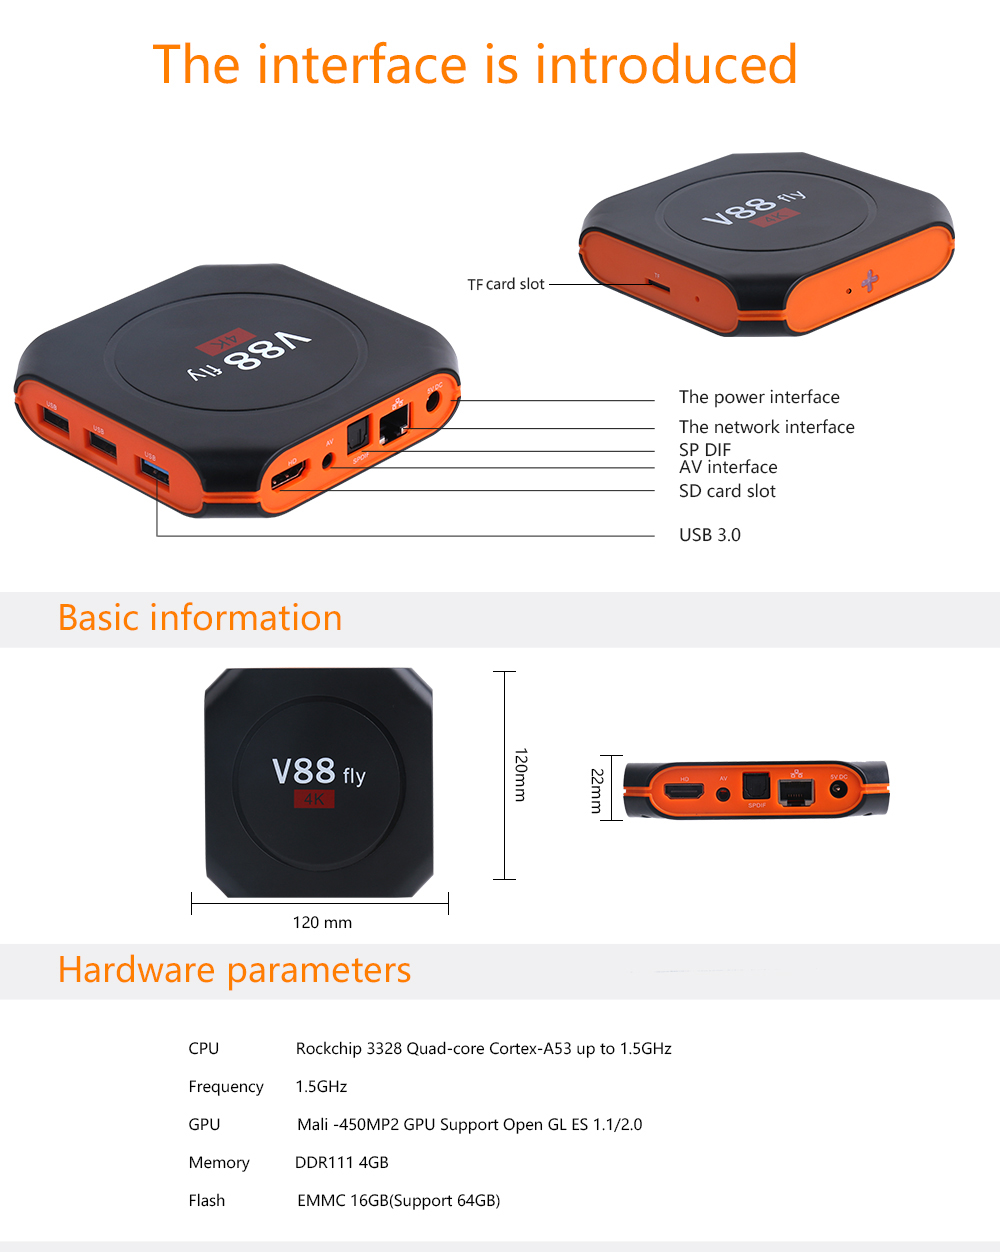 images/wholesale-electronics-2019/v88-Android-TV-Box-4K-Support-Quad-Core-CPU-4GB-RAM-Google-Play-Kodi-TV-Wifi-Android-70-64GB-SD-Card-Support-plusbuyer_991.jpg